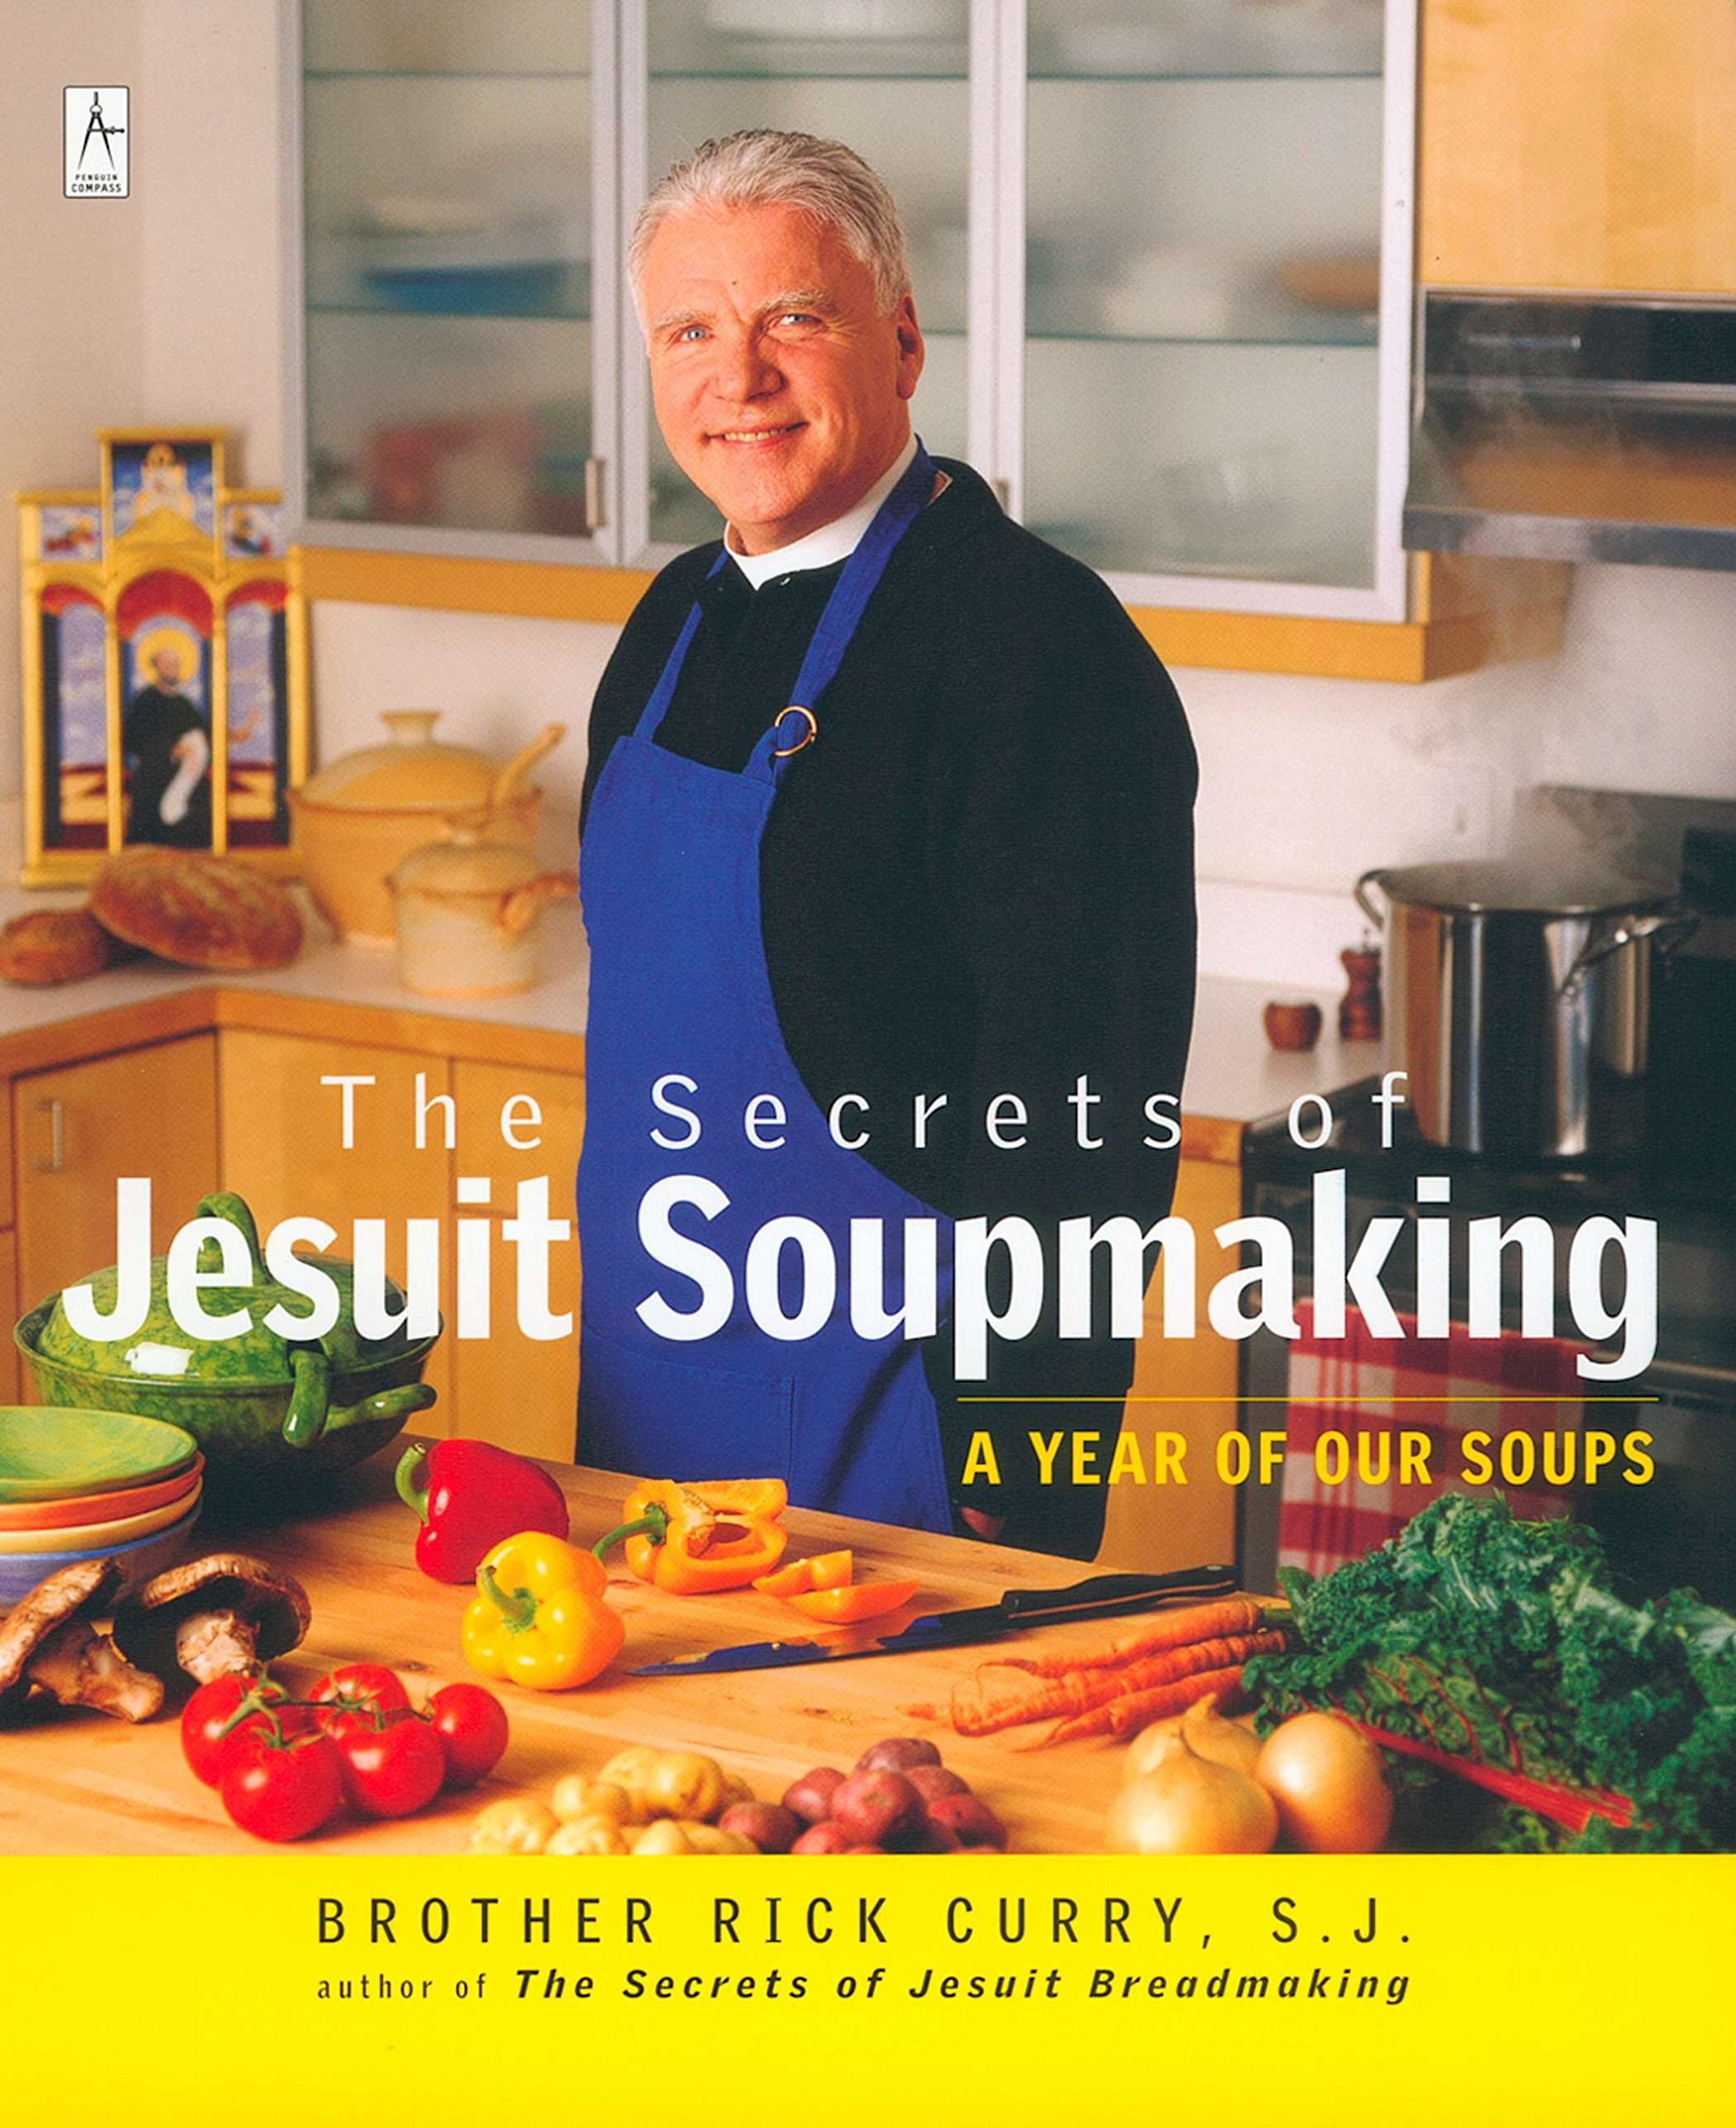 The Secrets of Jesuit Soupmaking: A Year of Our Soups